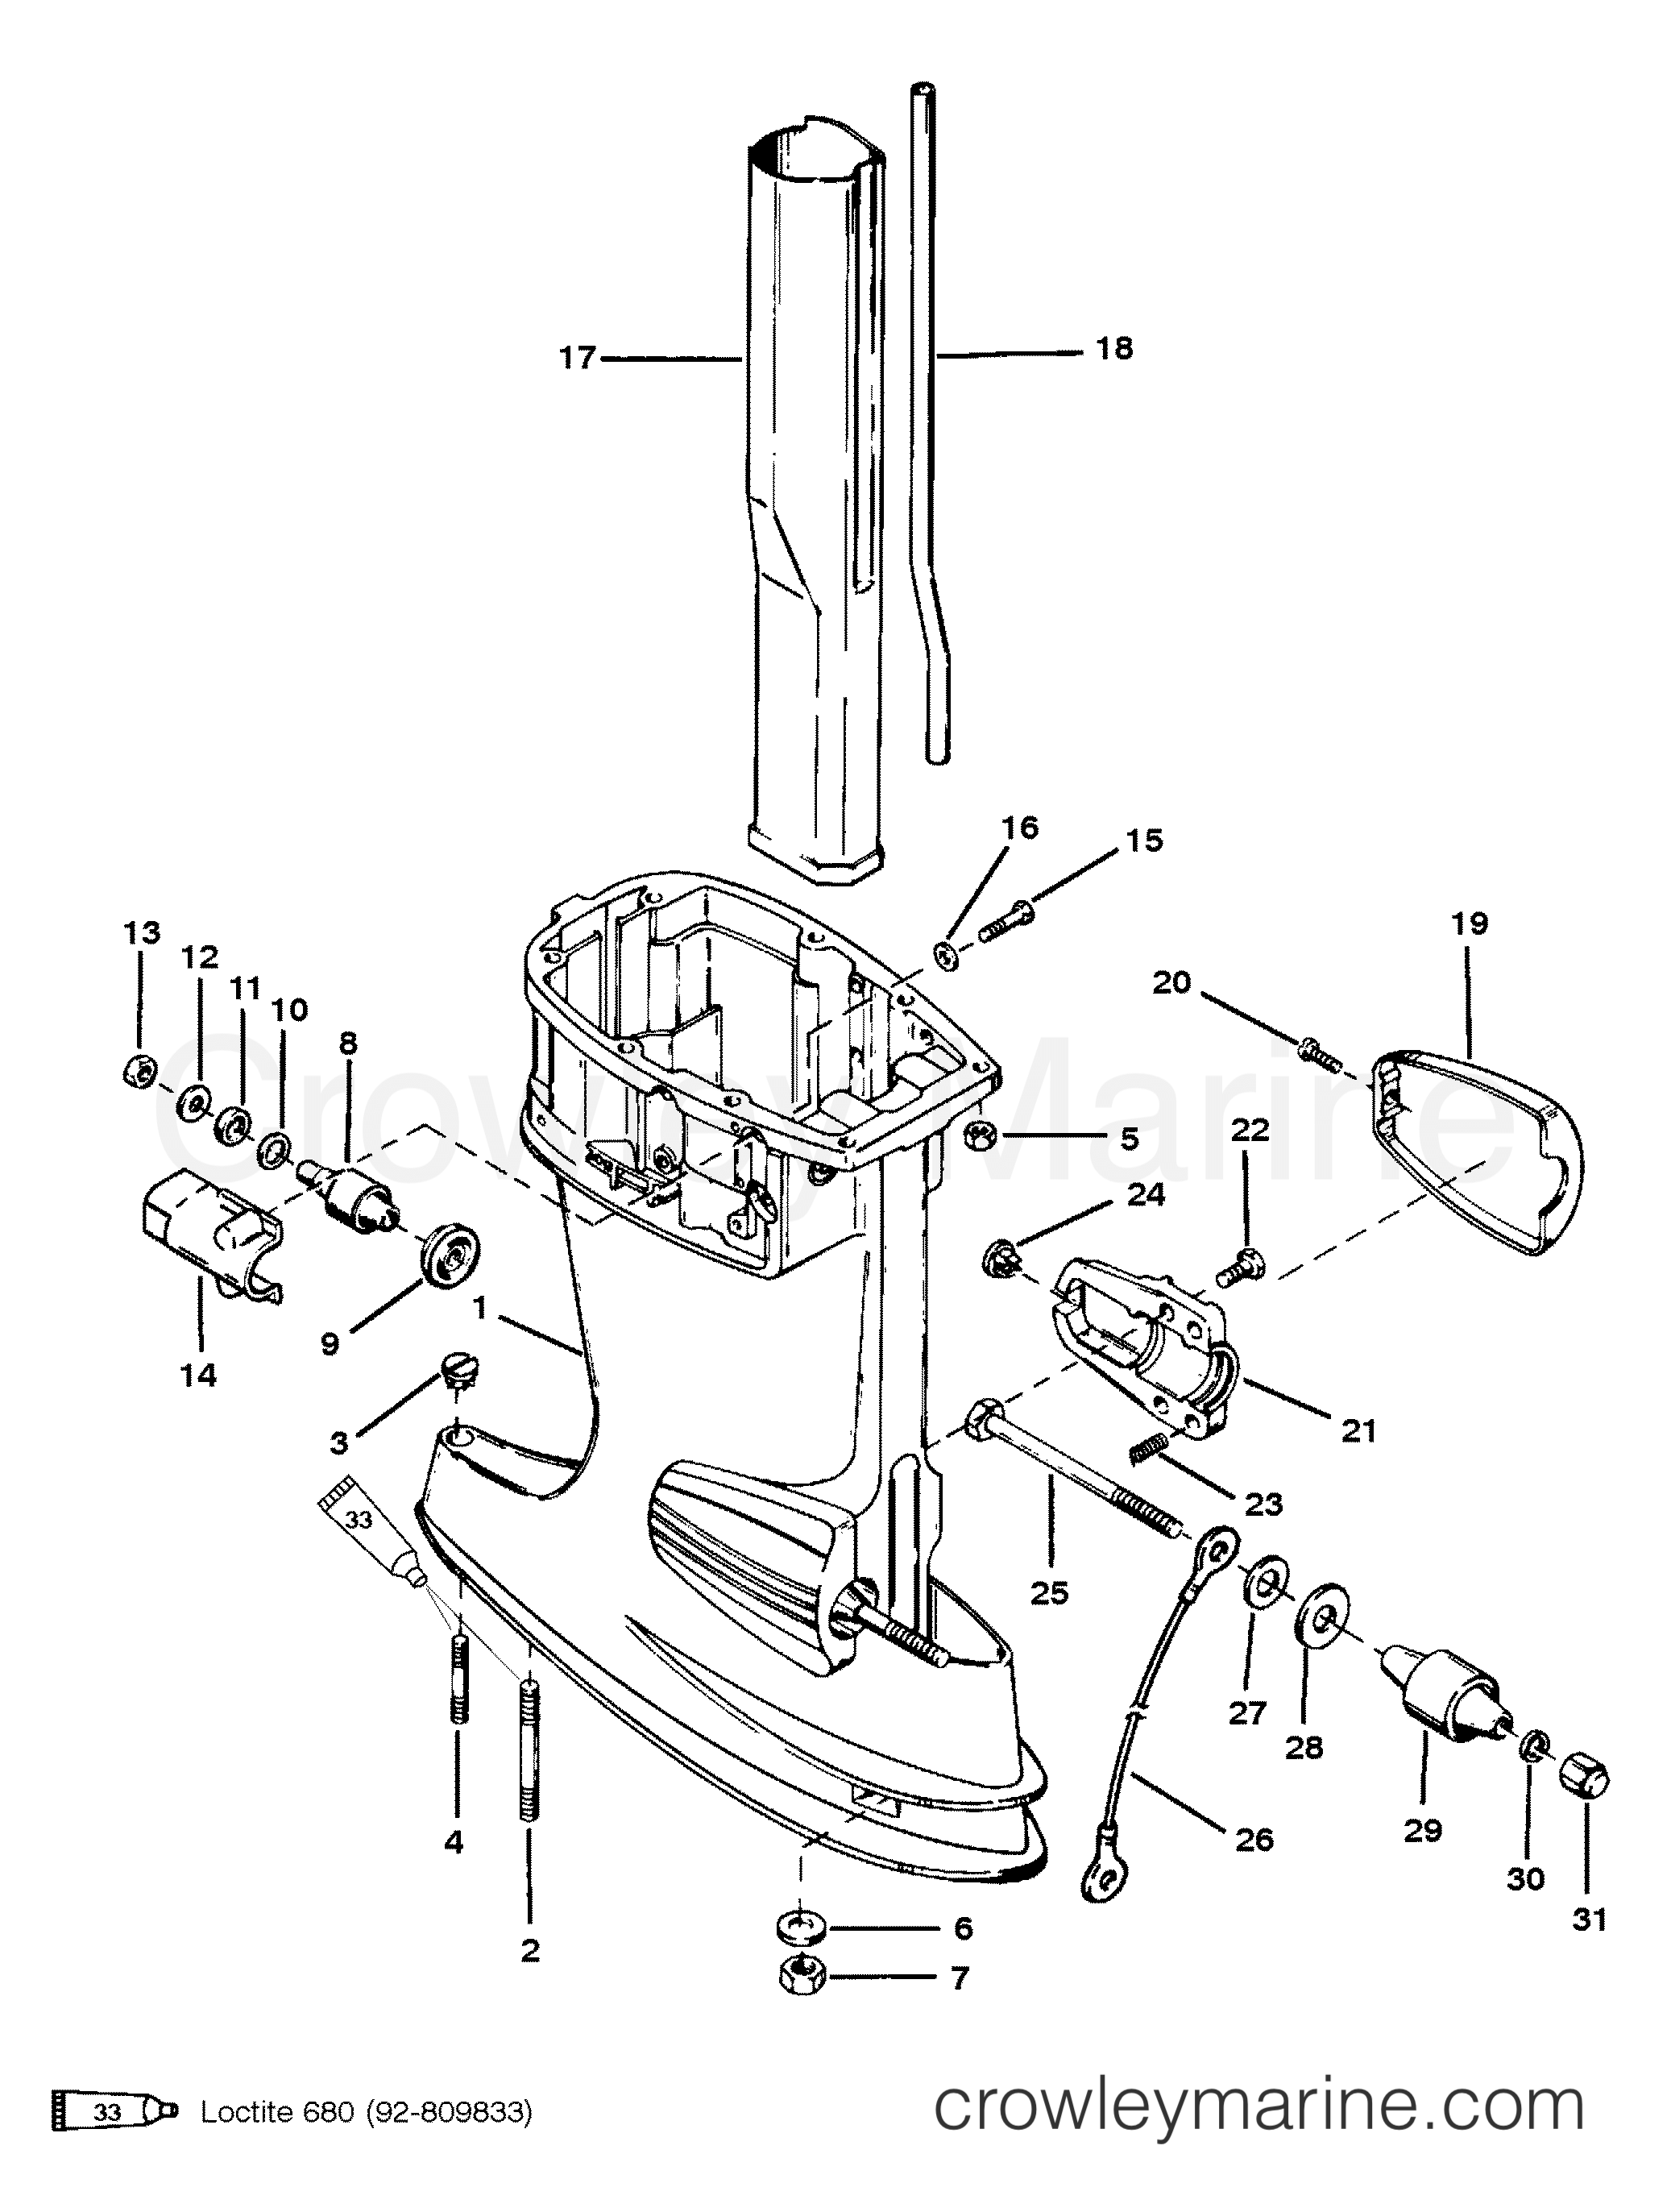 1992 Mercury Outboard 40 [EO] - 1040302MD - DRIVE SHAFT HOUSING ASSEMBLY section